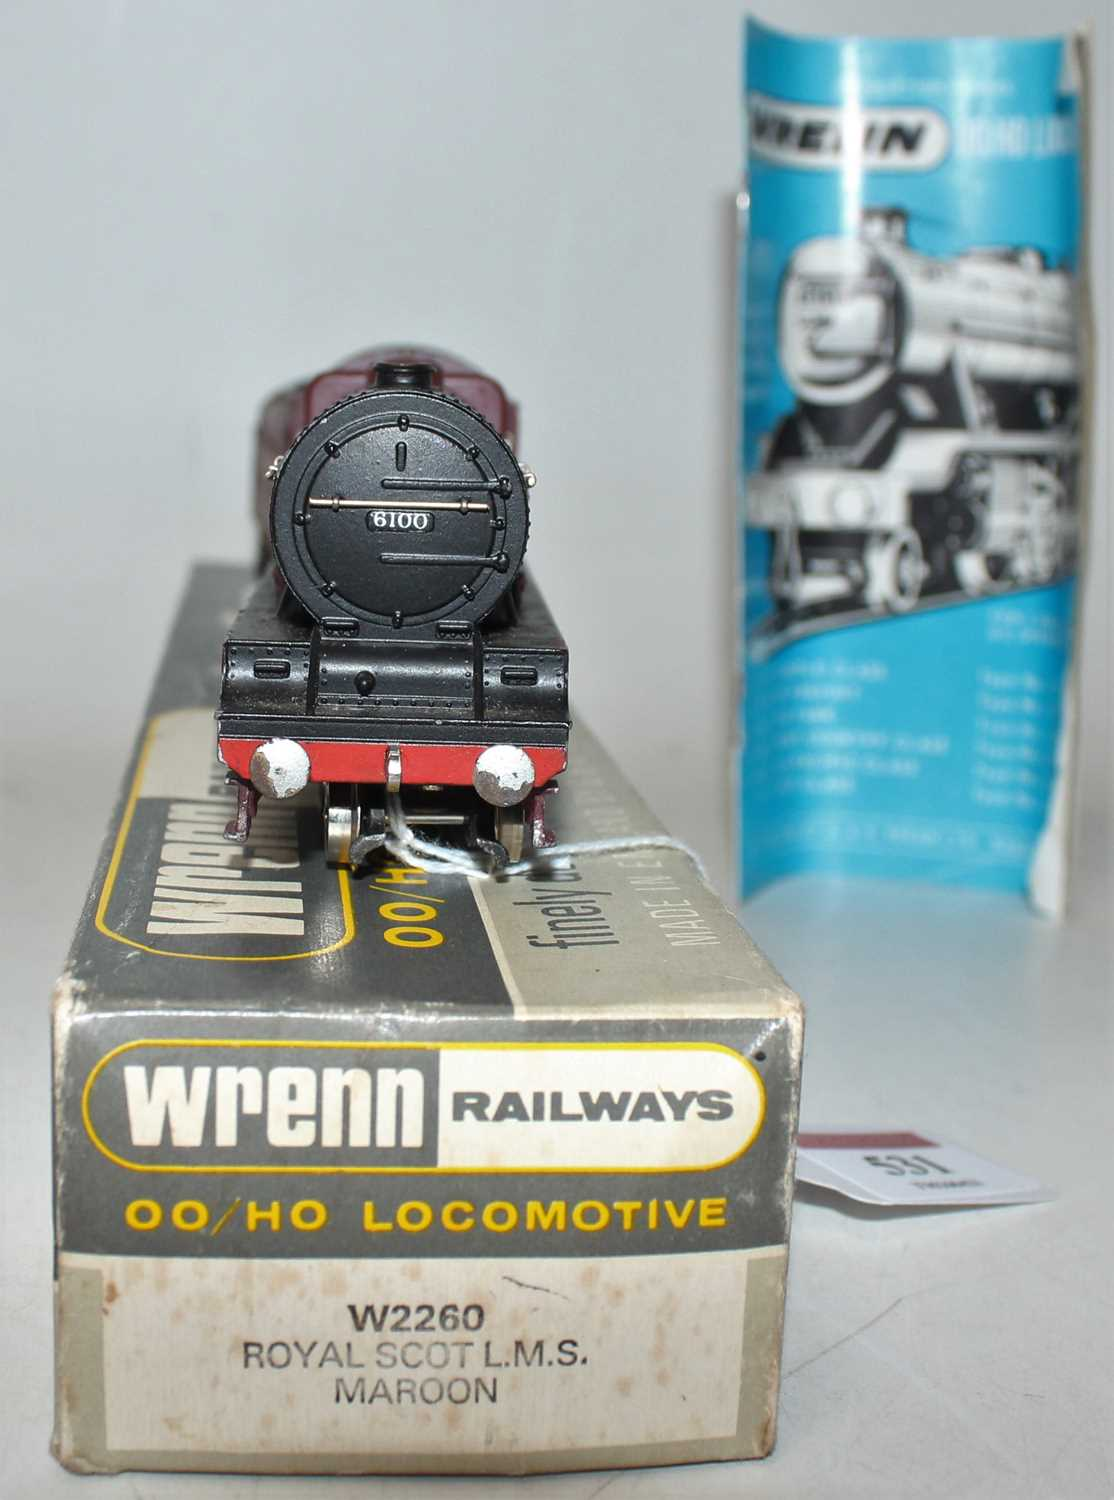 W2260 Wrenn loco & tender 'Royal Scot' 4-6-0 No.6100, LMS red, chips to cylinder covers, - Image 3 of 3